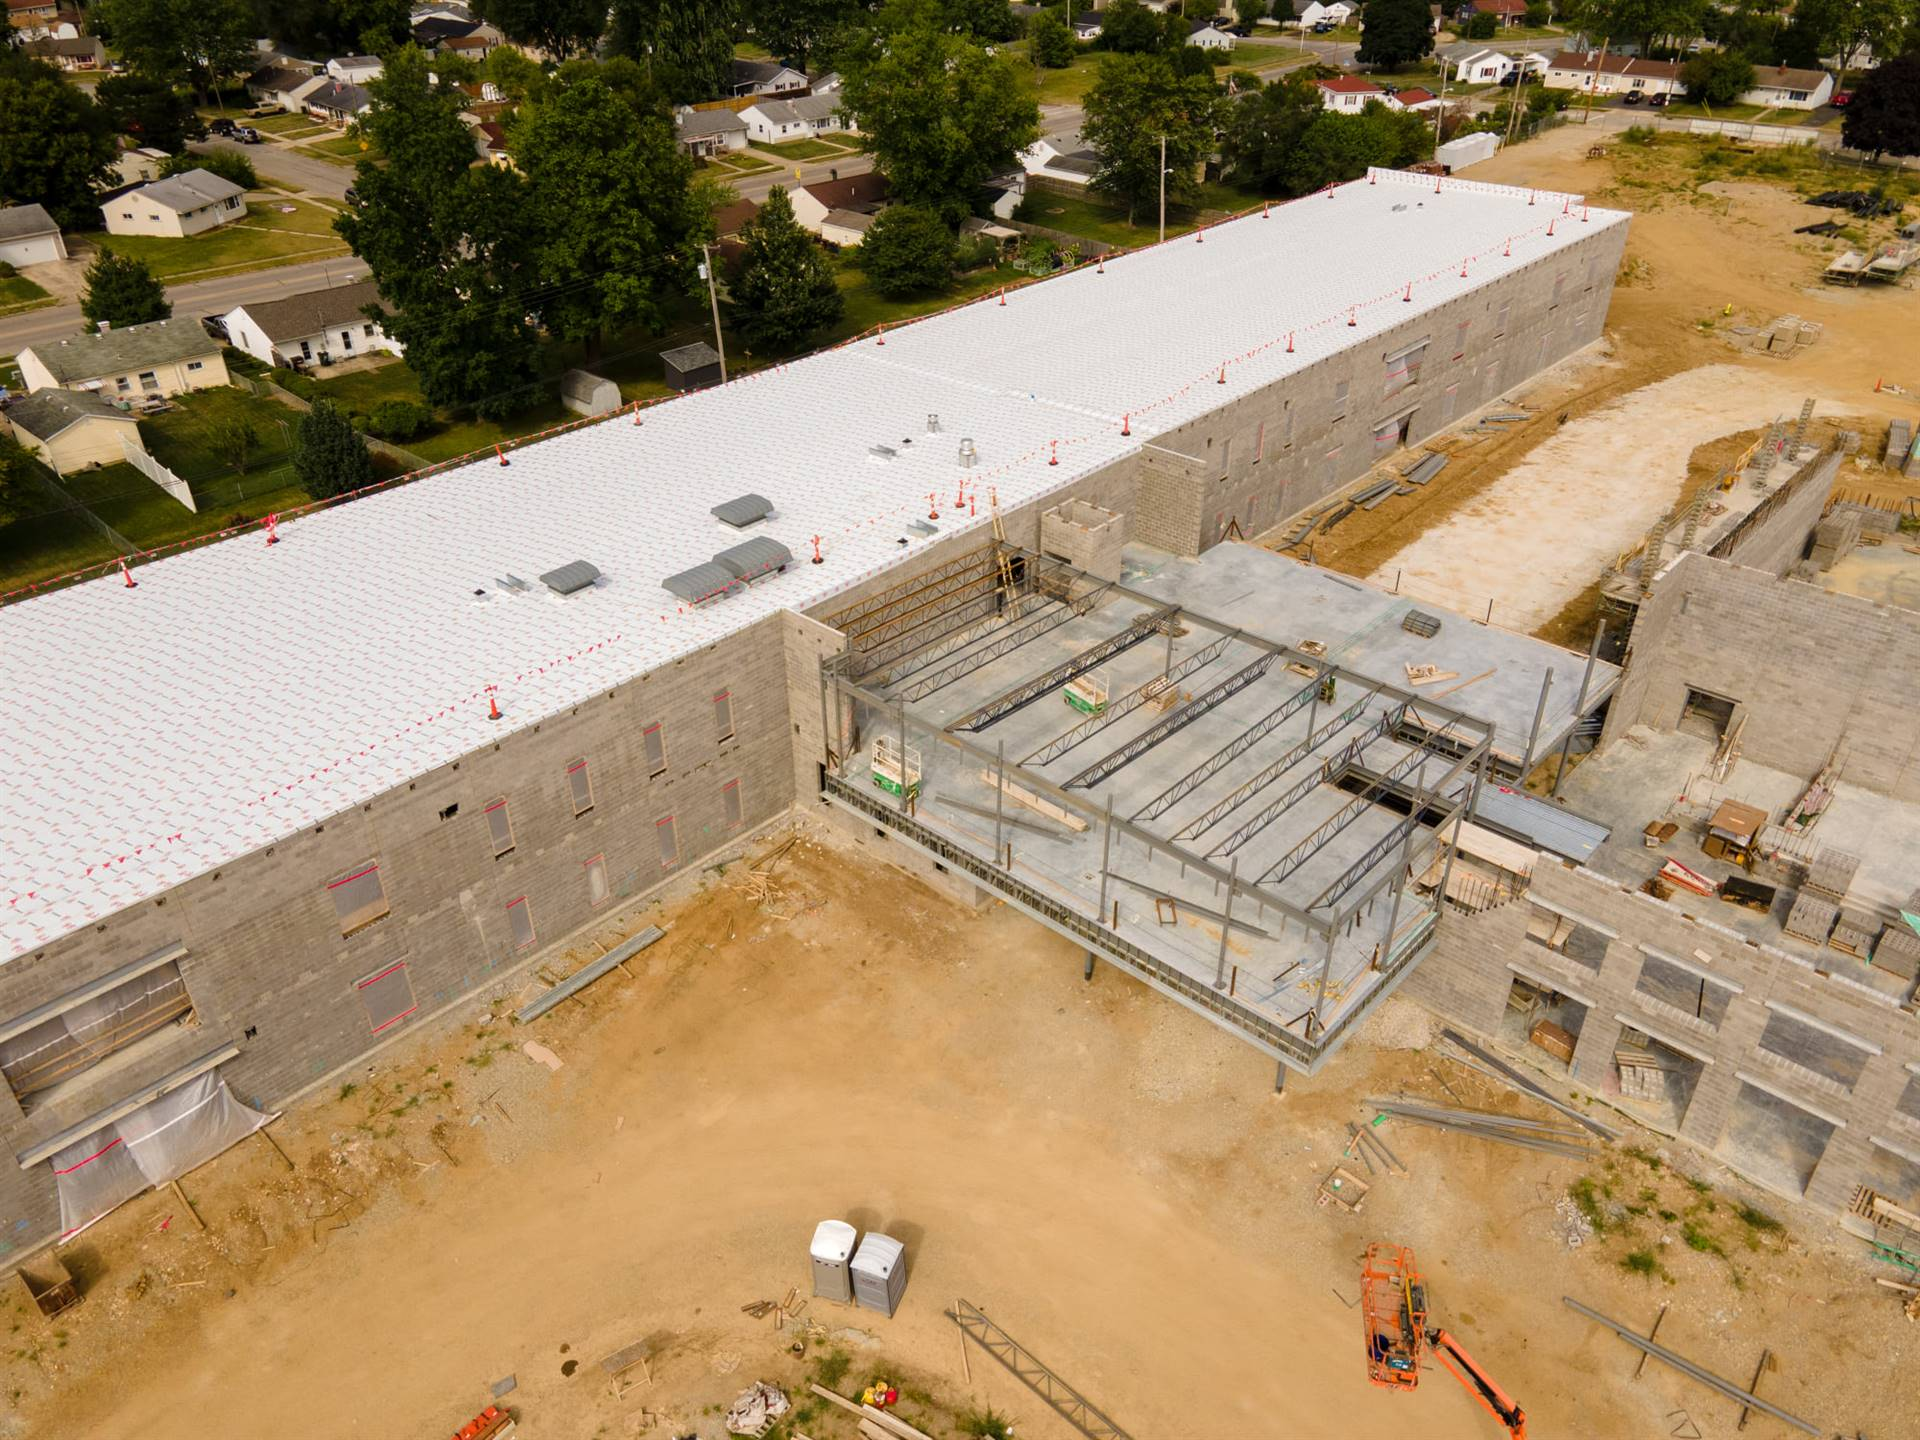 Busy Bee Aerial Photo LLC from August 15, 2021